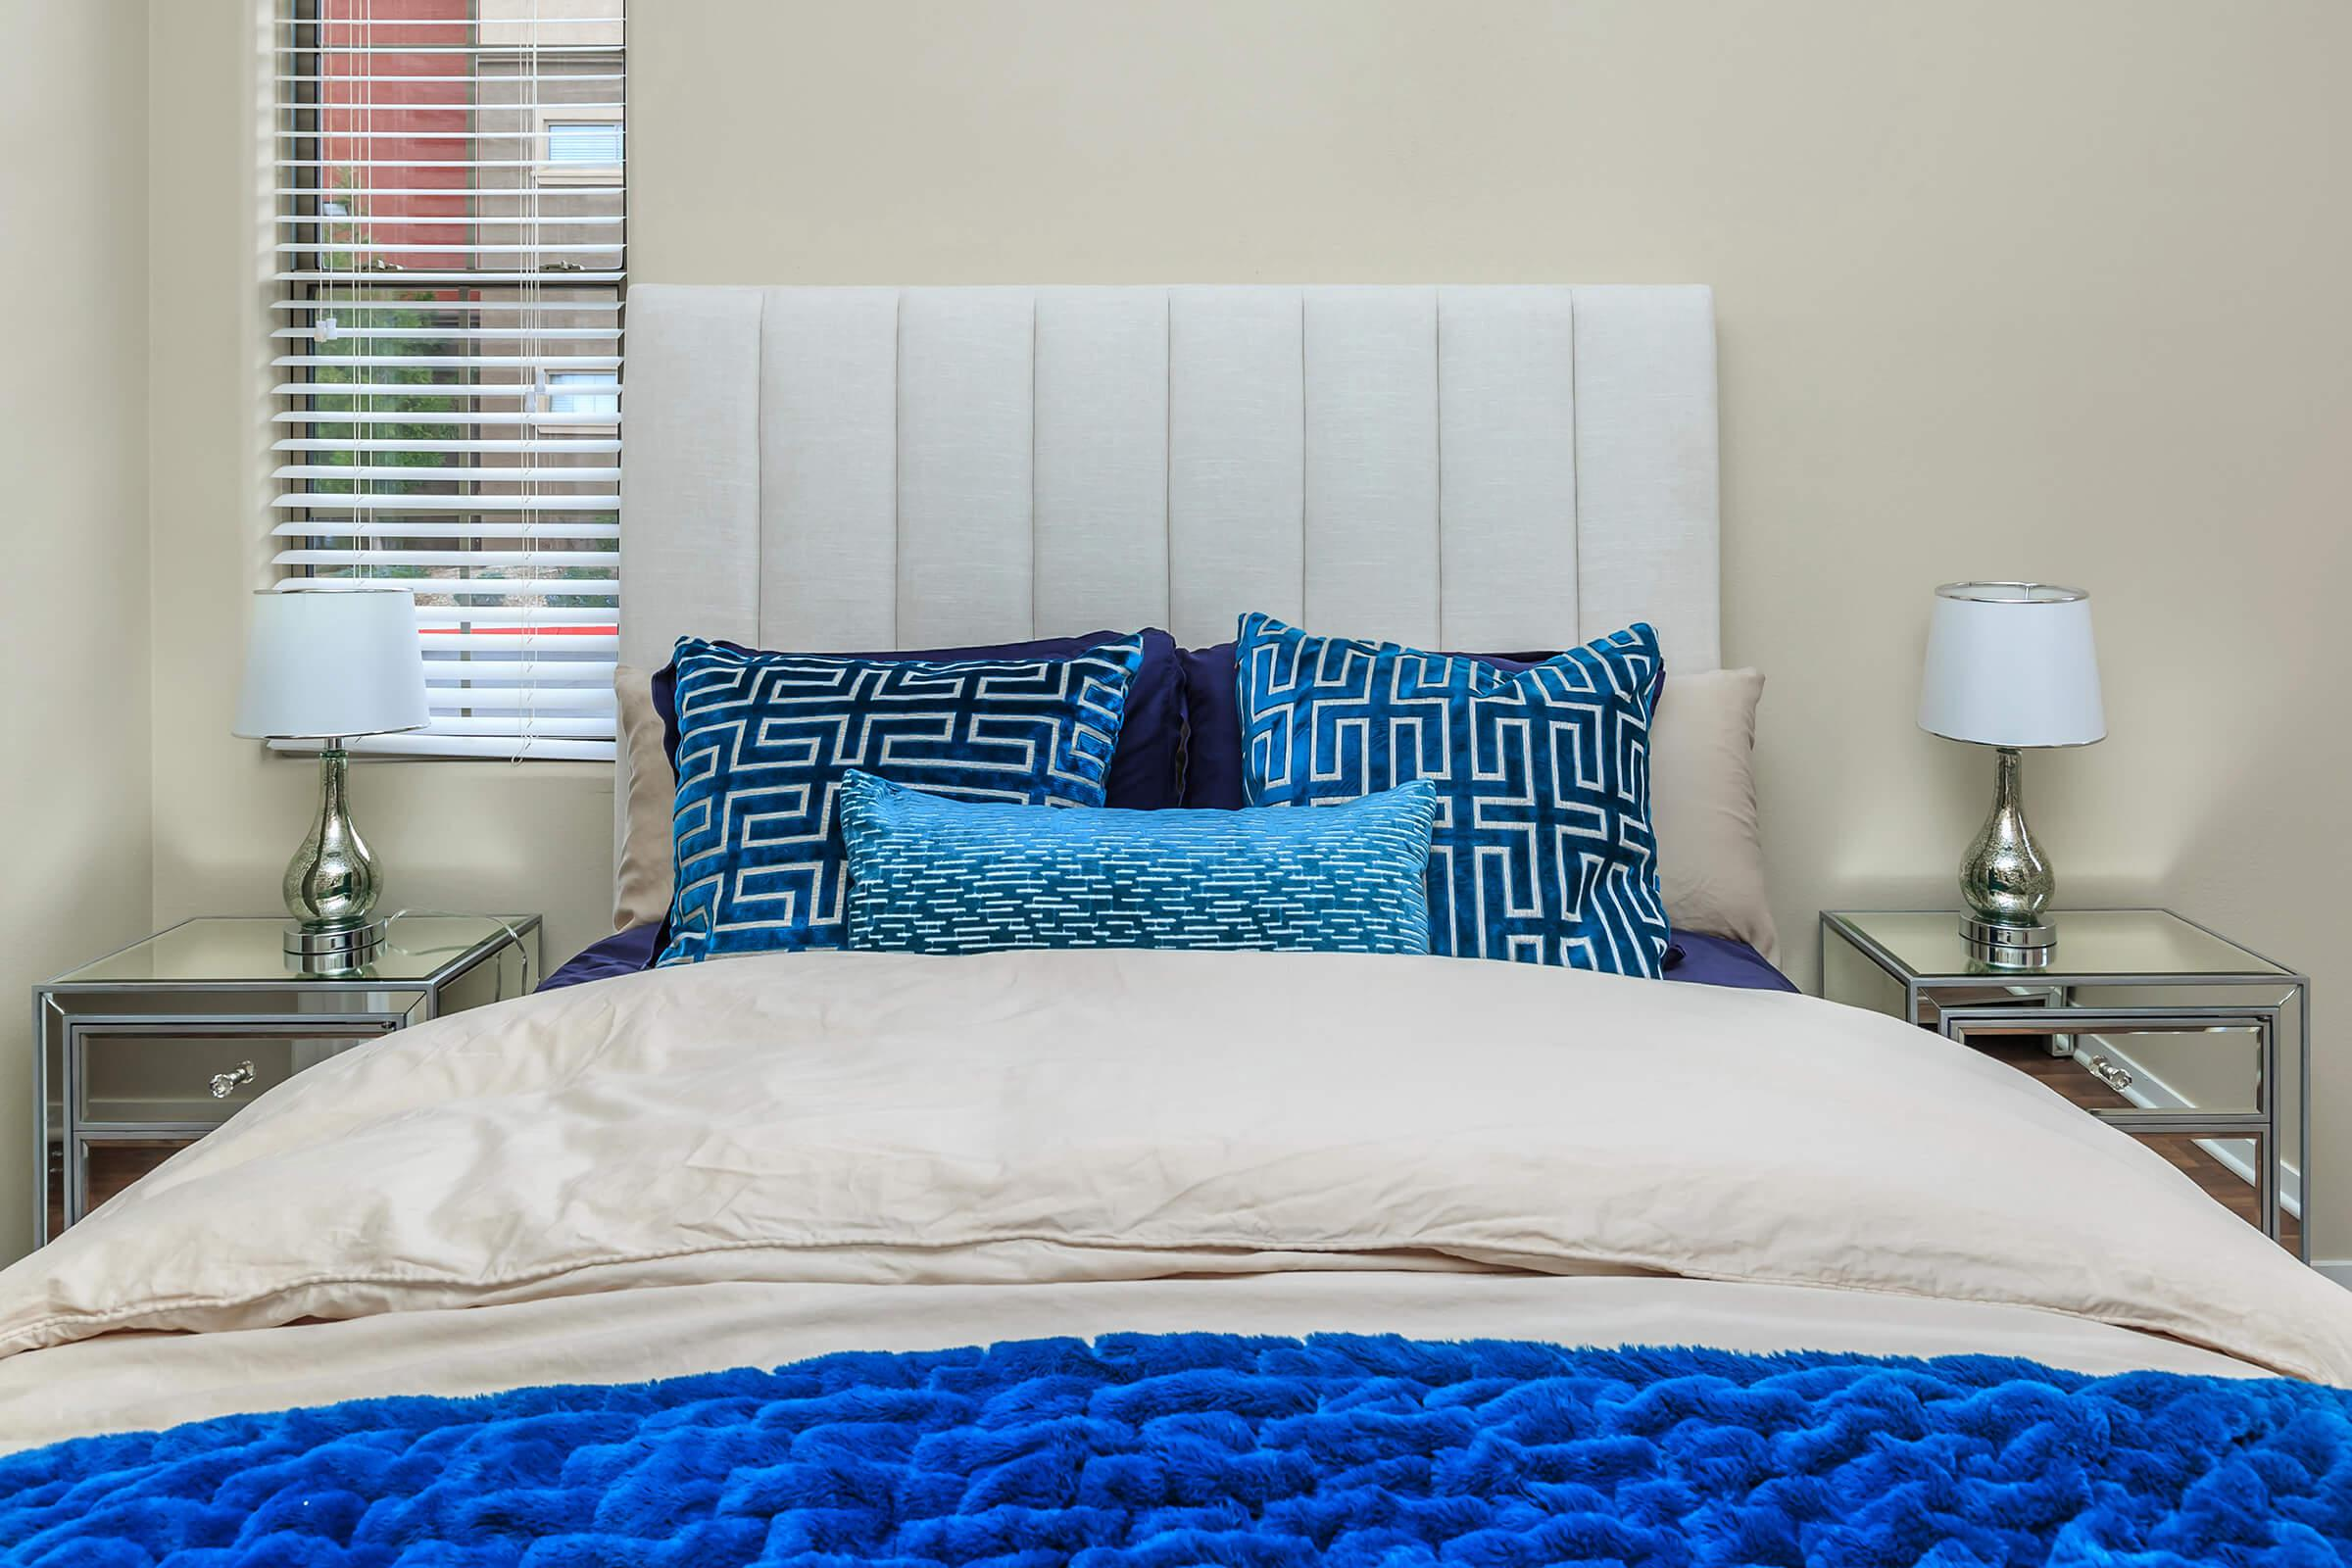 a blue and white bed in a bedroom